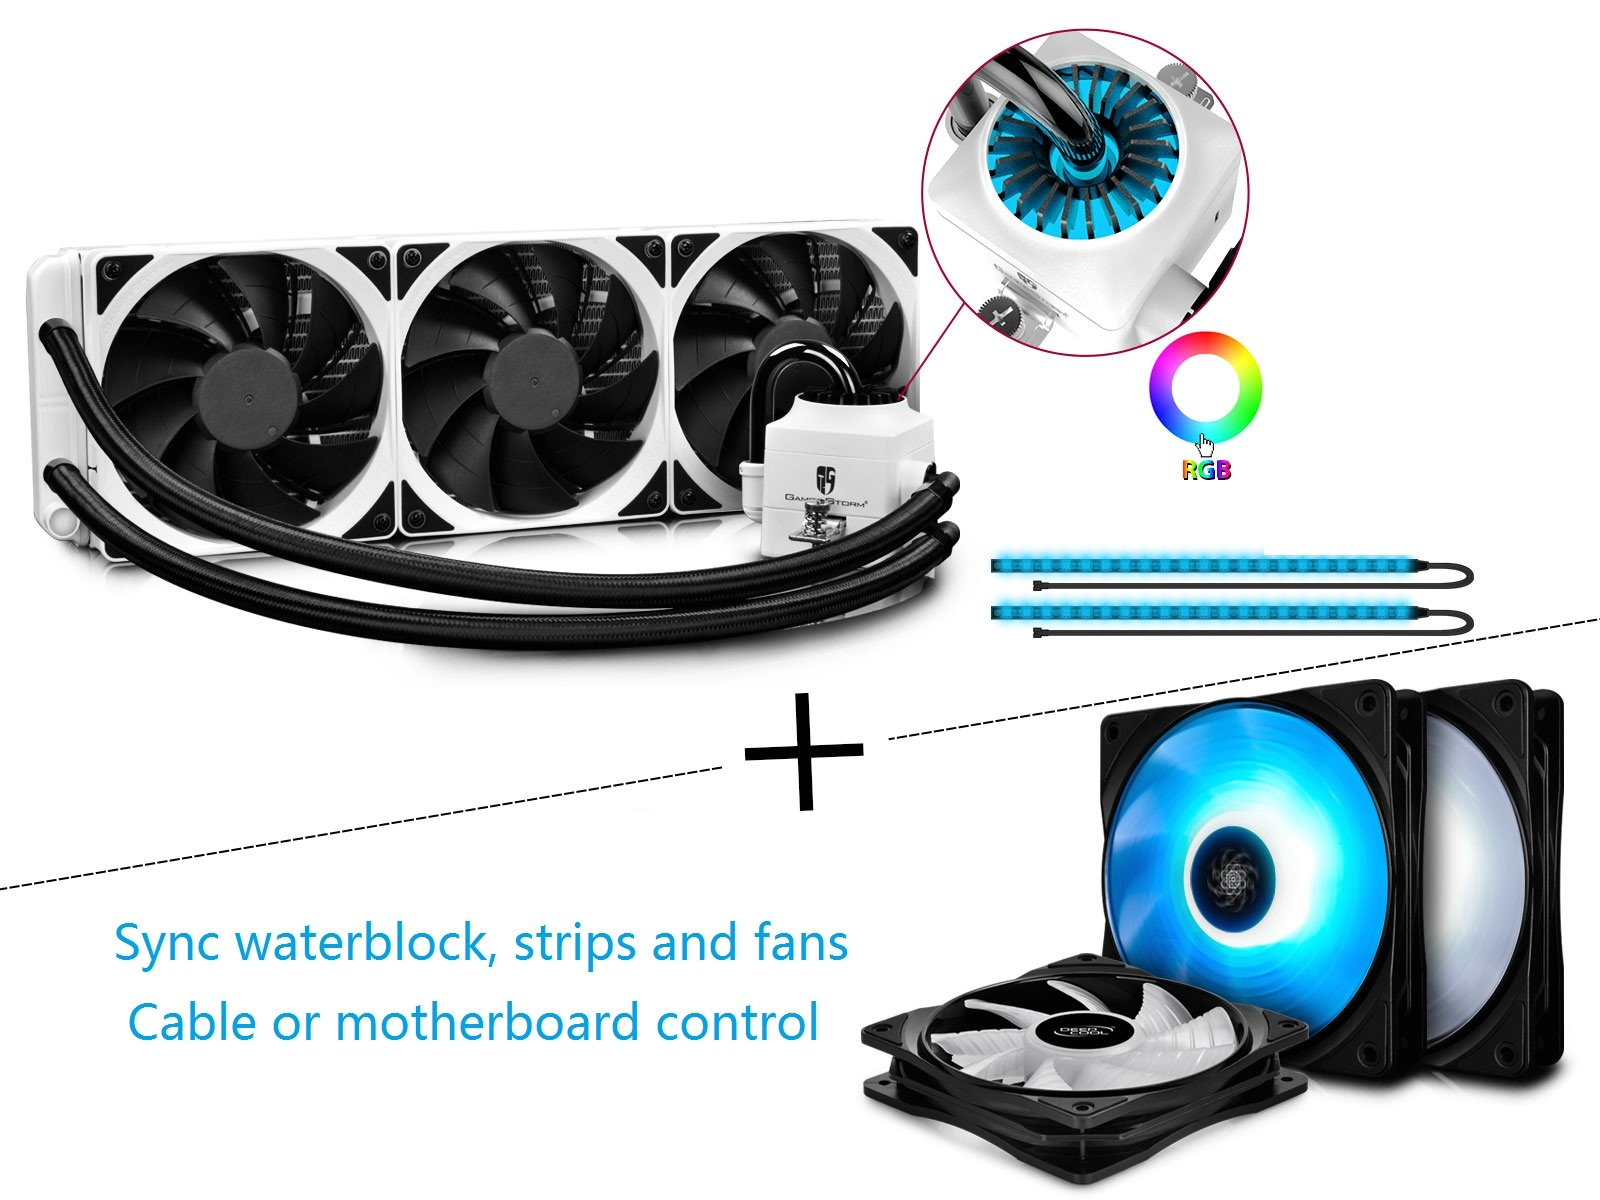 BUNDLING SALE of DEEPCOOL CAPTAIN 360EX RGB WH and RF120 3IN1, RGB of Waterblock, 2 Strips and 3 RF120 Fans are Synchronous with Cable Controller or Motherboard Control, AM4 Compatible 3-year Warranty